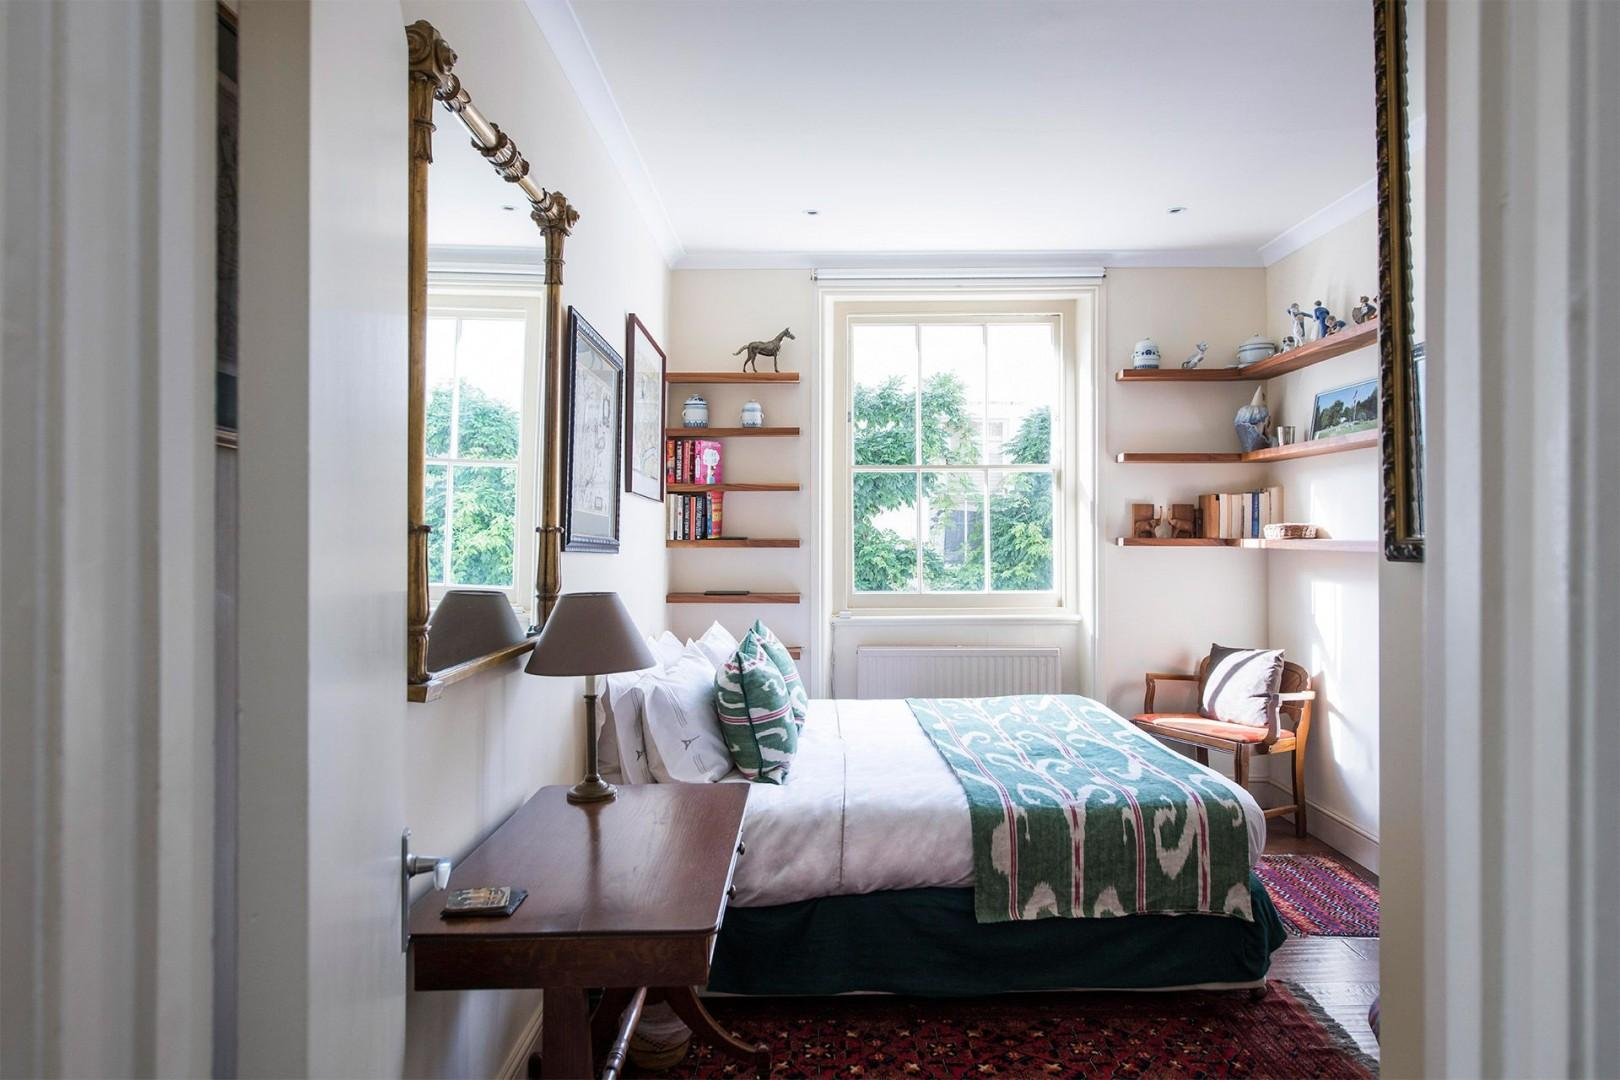 Second bedroom with a comfortable bed that can be separated to form two beds